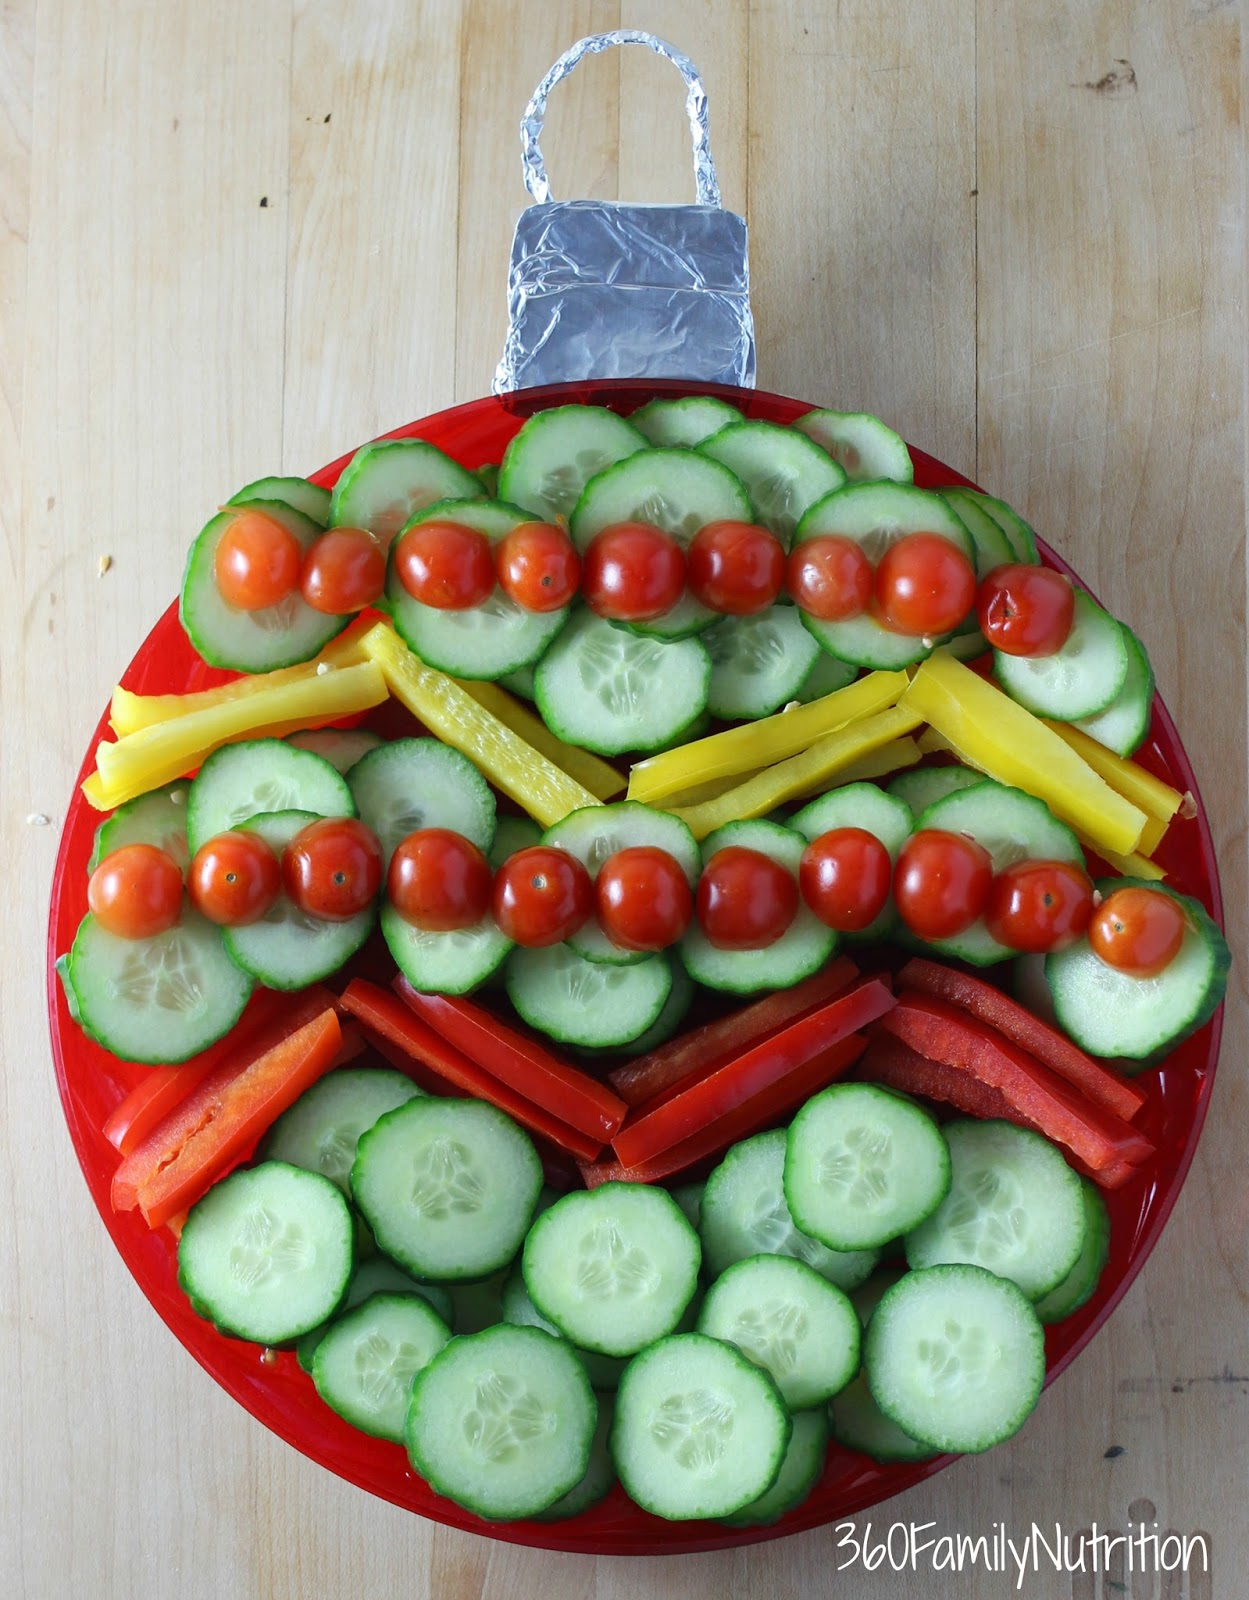 Christmas Veggie Tray.Christmas Ornament Vegetable Platter